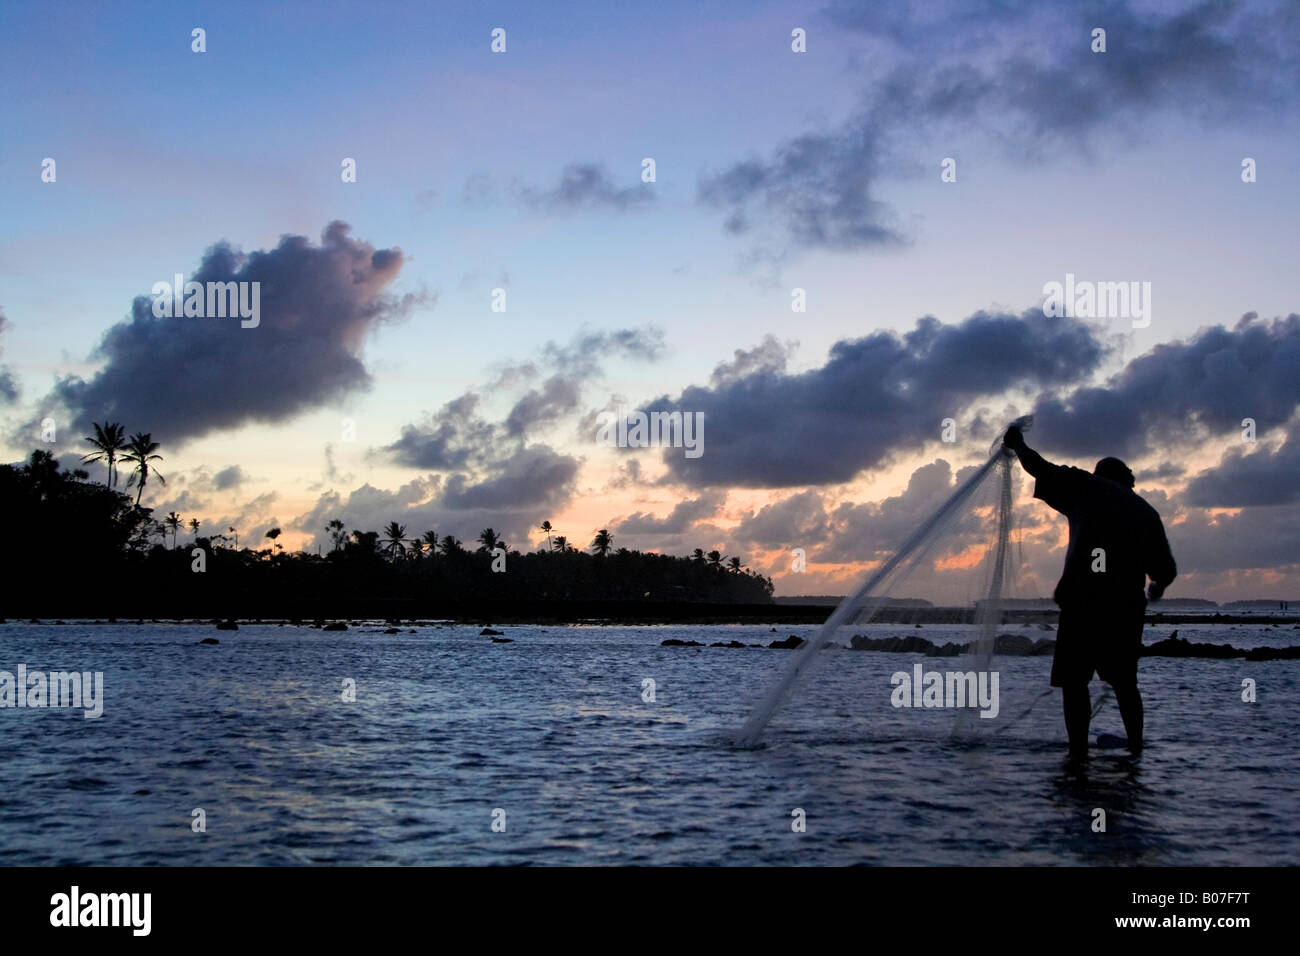 Fisherman, Majuro Atoll, Marshall Islands - Stock Image